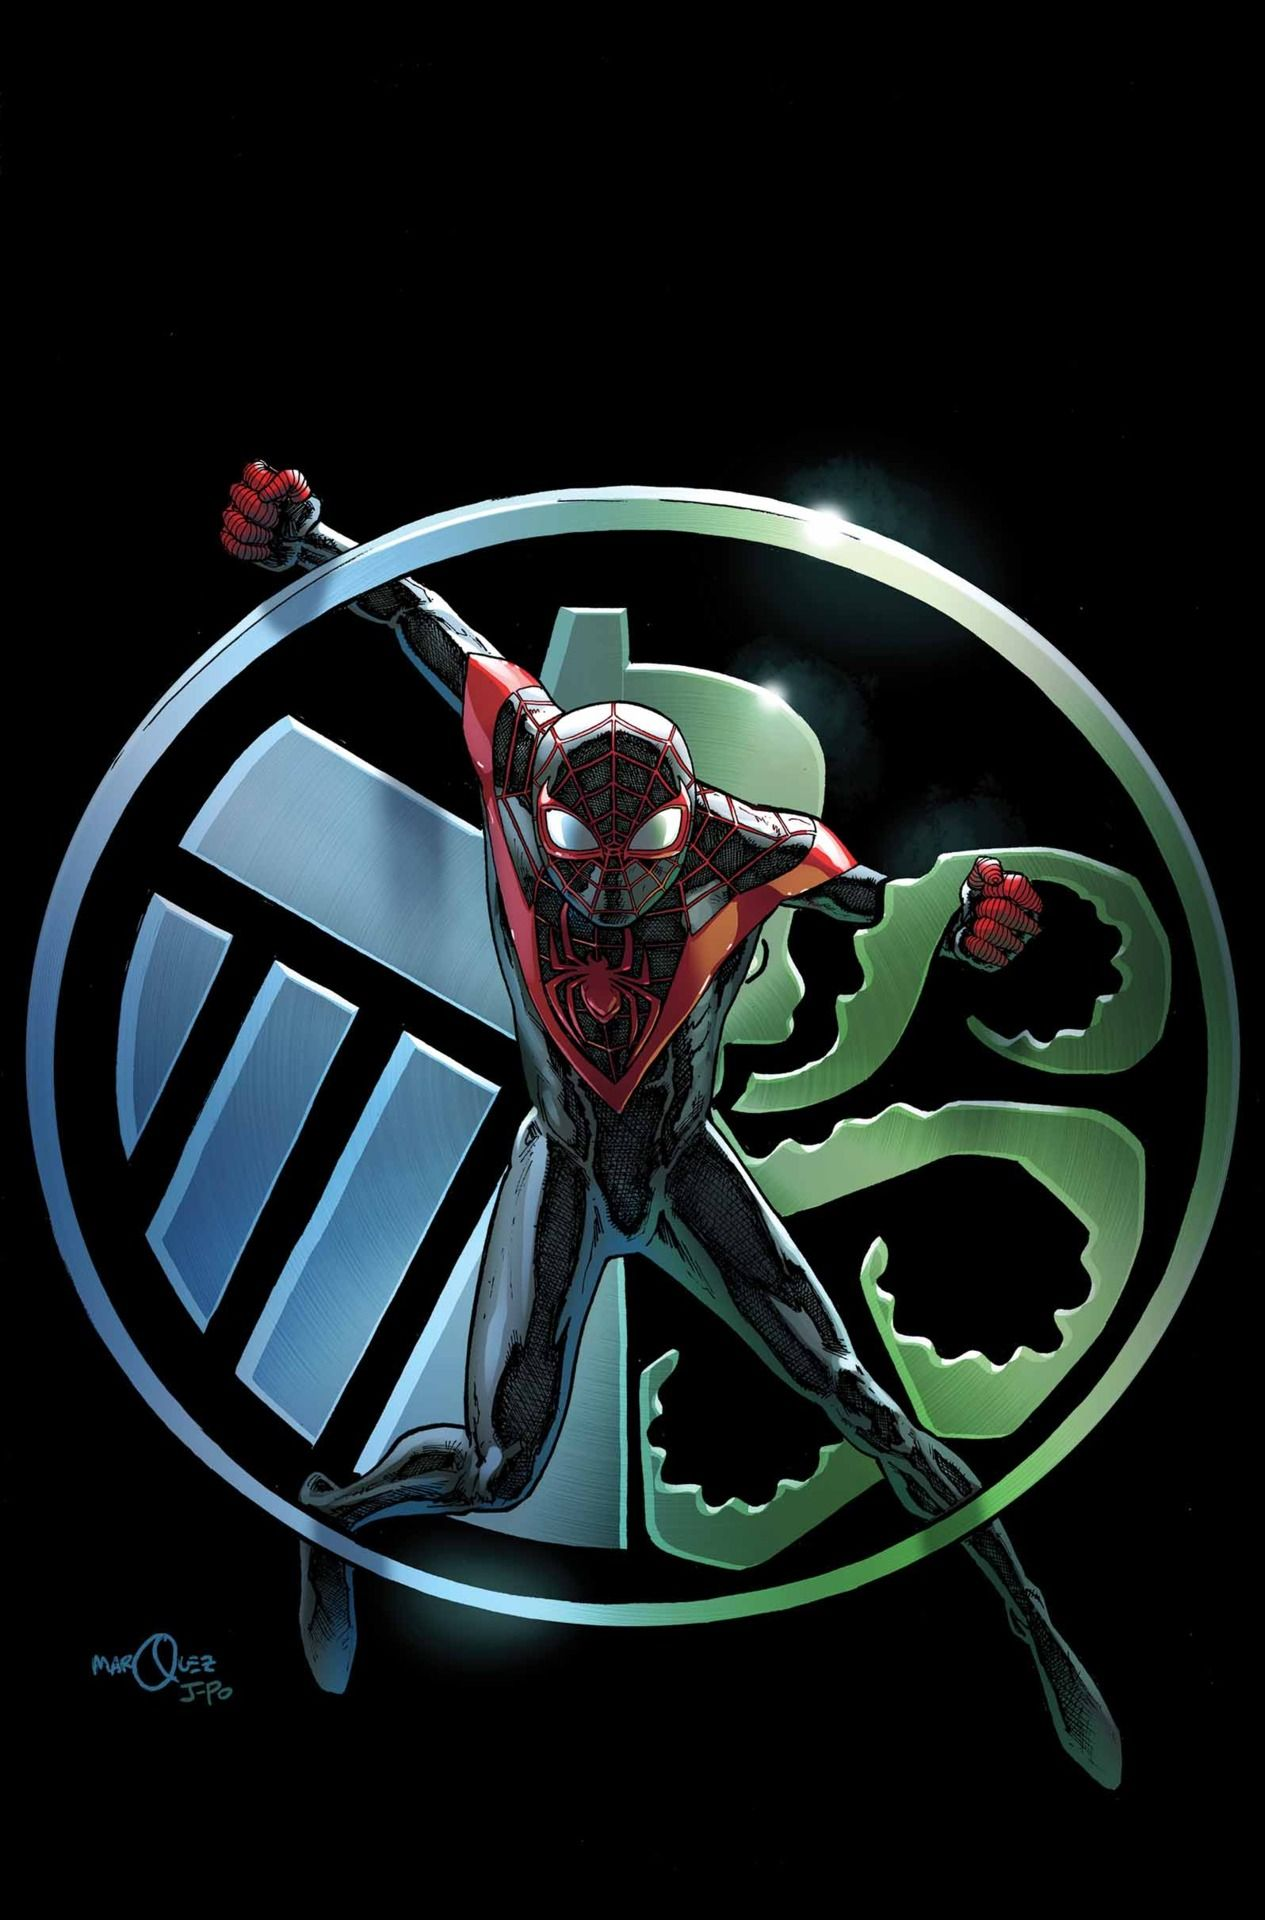 #Spiderman #Miles #Morales #Fan #Art. (Miles Morales Ultimate Spider-Man Vol.2 #8 Cover) By: David Marquez. ÅWESOMENESS!!!™ ÅÅÅ+